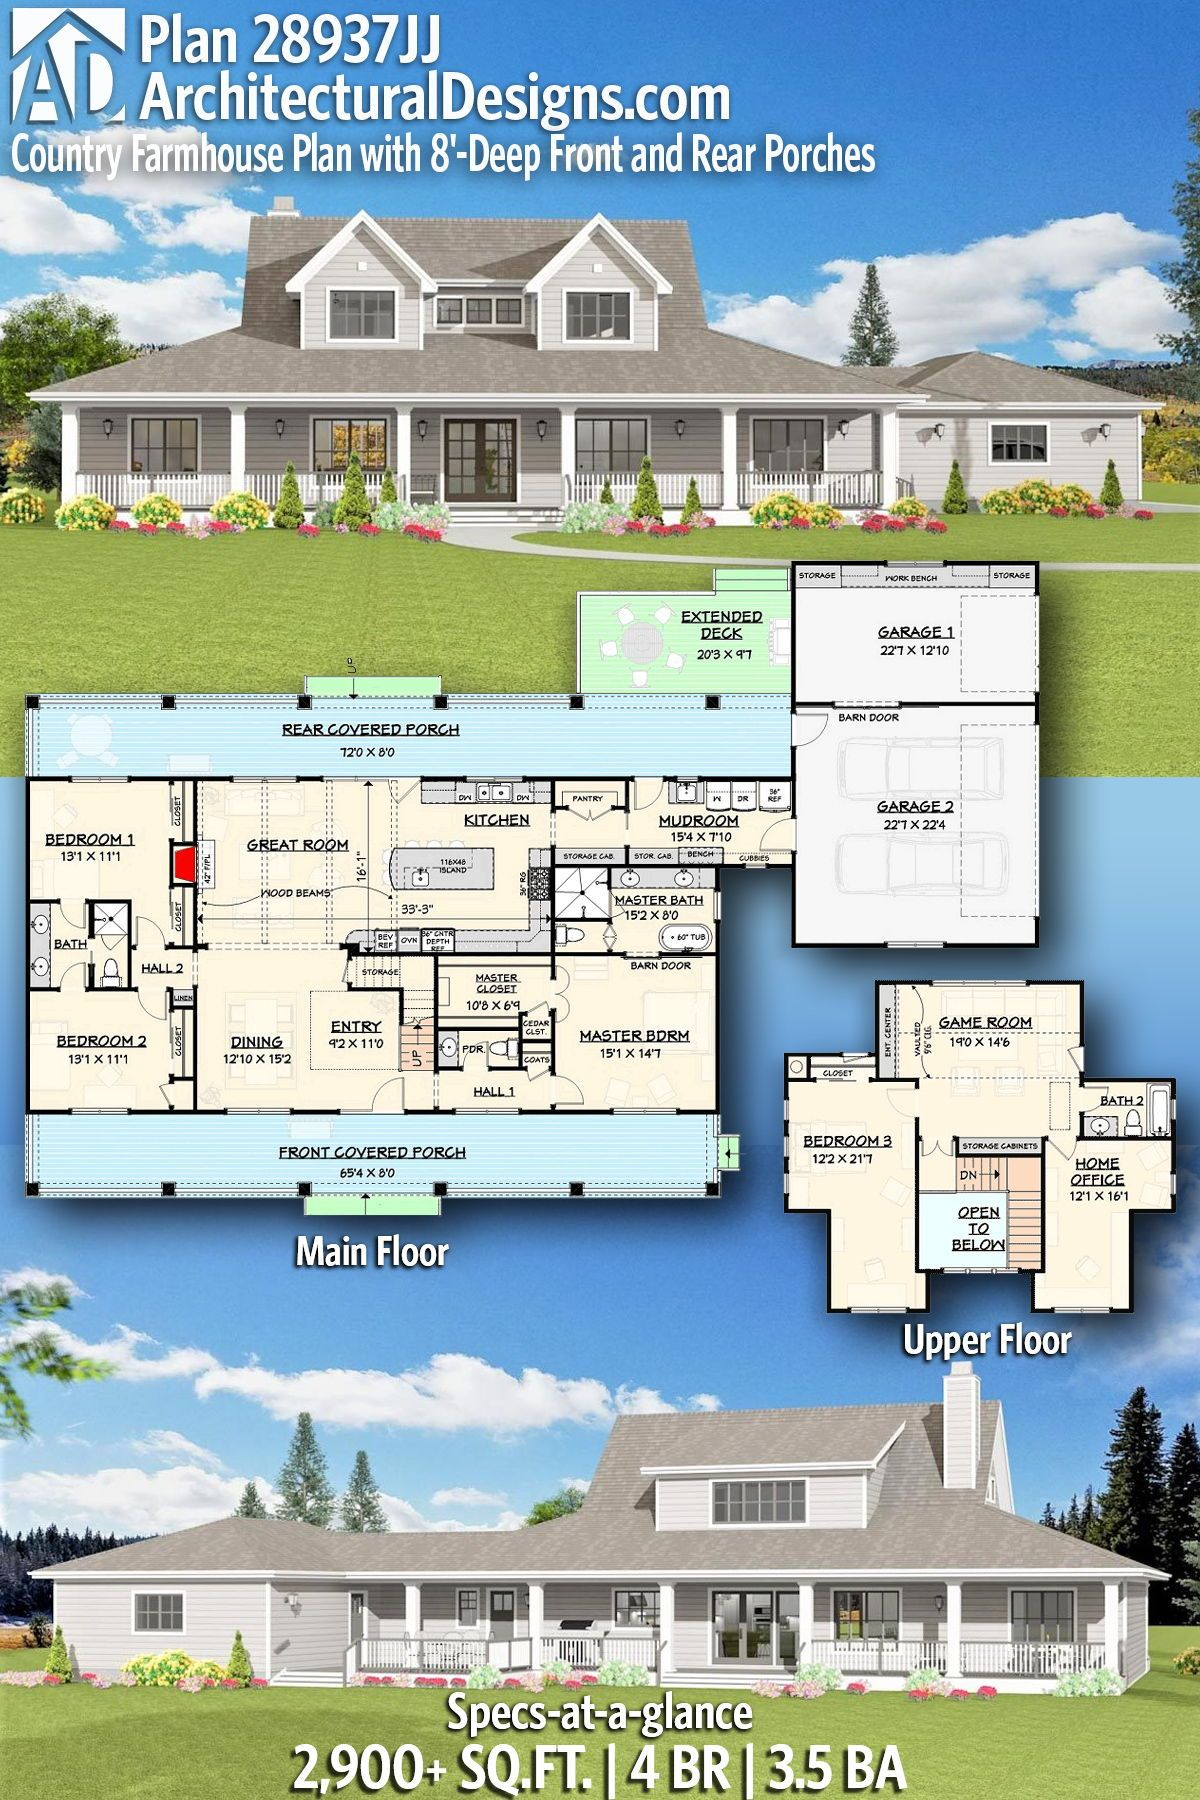 Plan JJ Country Farmhouse Plan with 8 Deep Front and Rear Porches